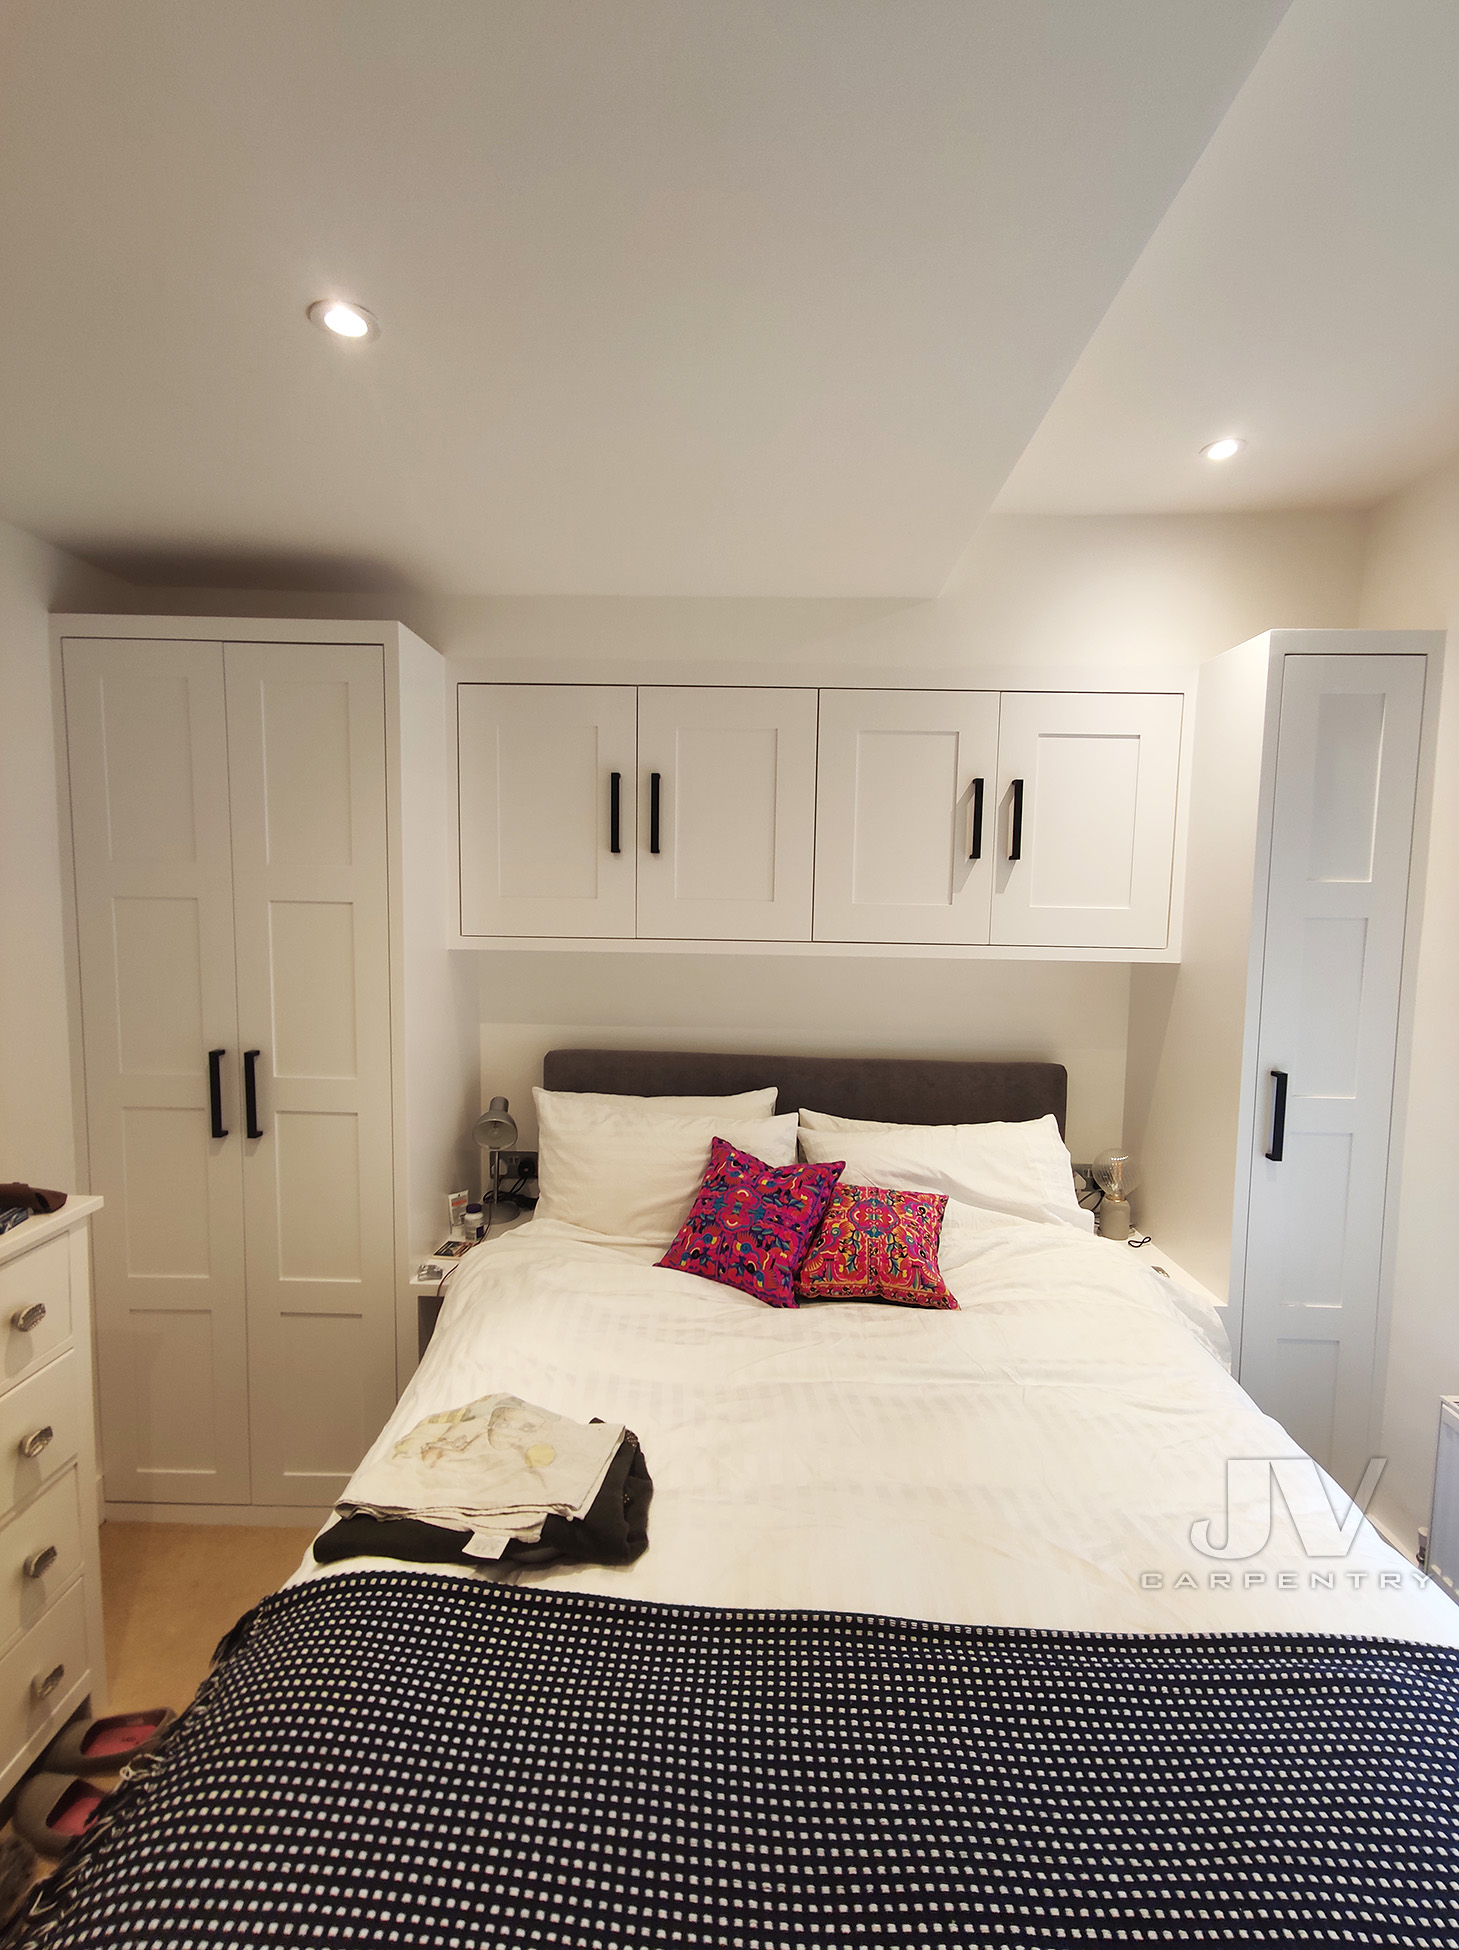 wardrobe with over the bed cupboards